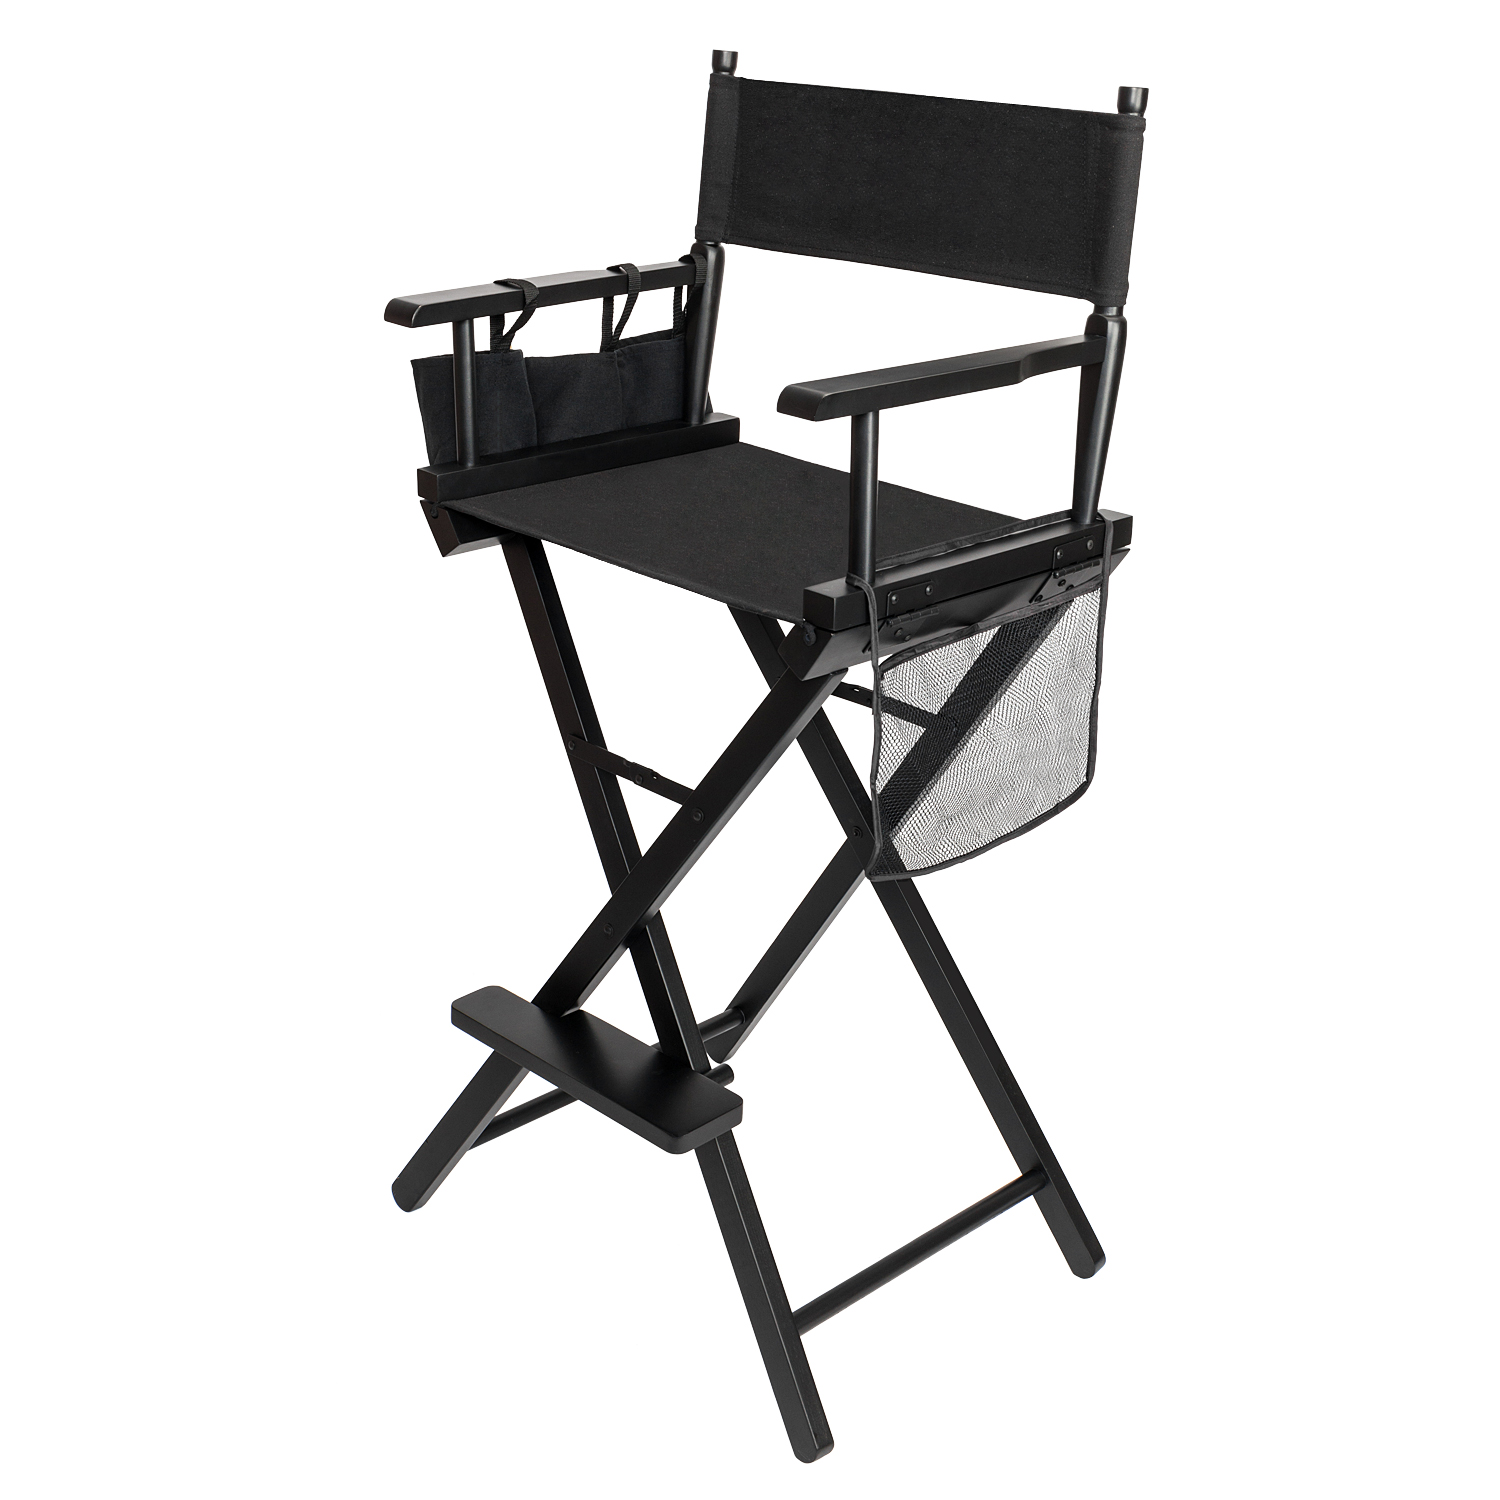 Folding Professional Makeup Artist Directors Chair Wood Light Weight And Black  sc 1 st  eBay & Folding Professional Makeup Artist Directors Chair Wood Light Weight ...